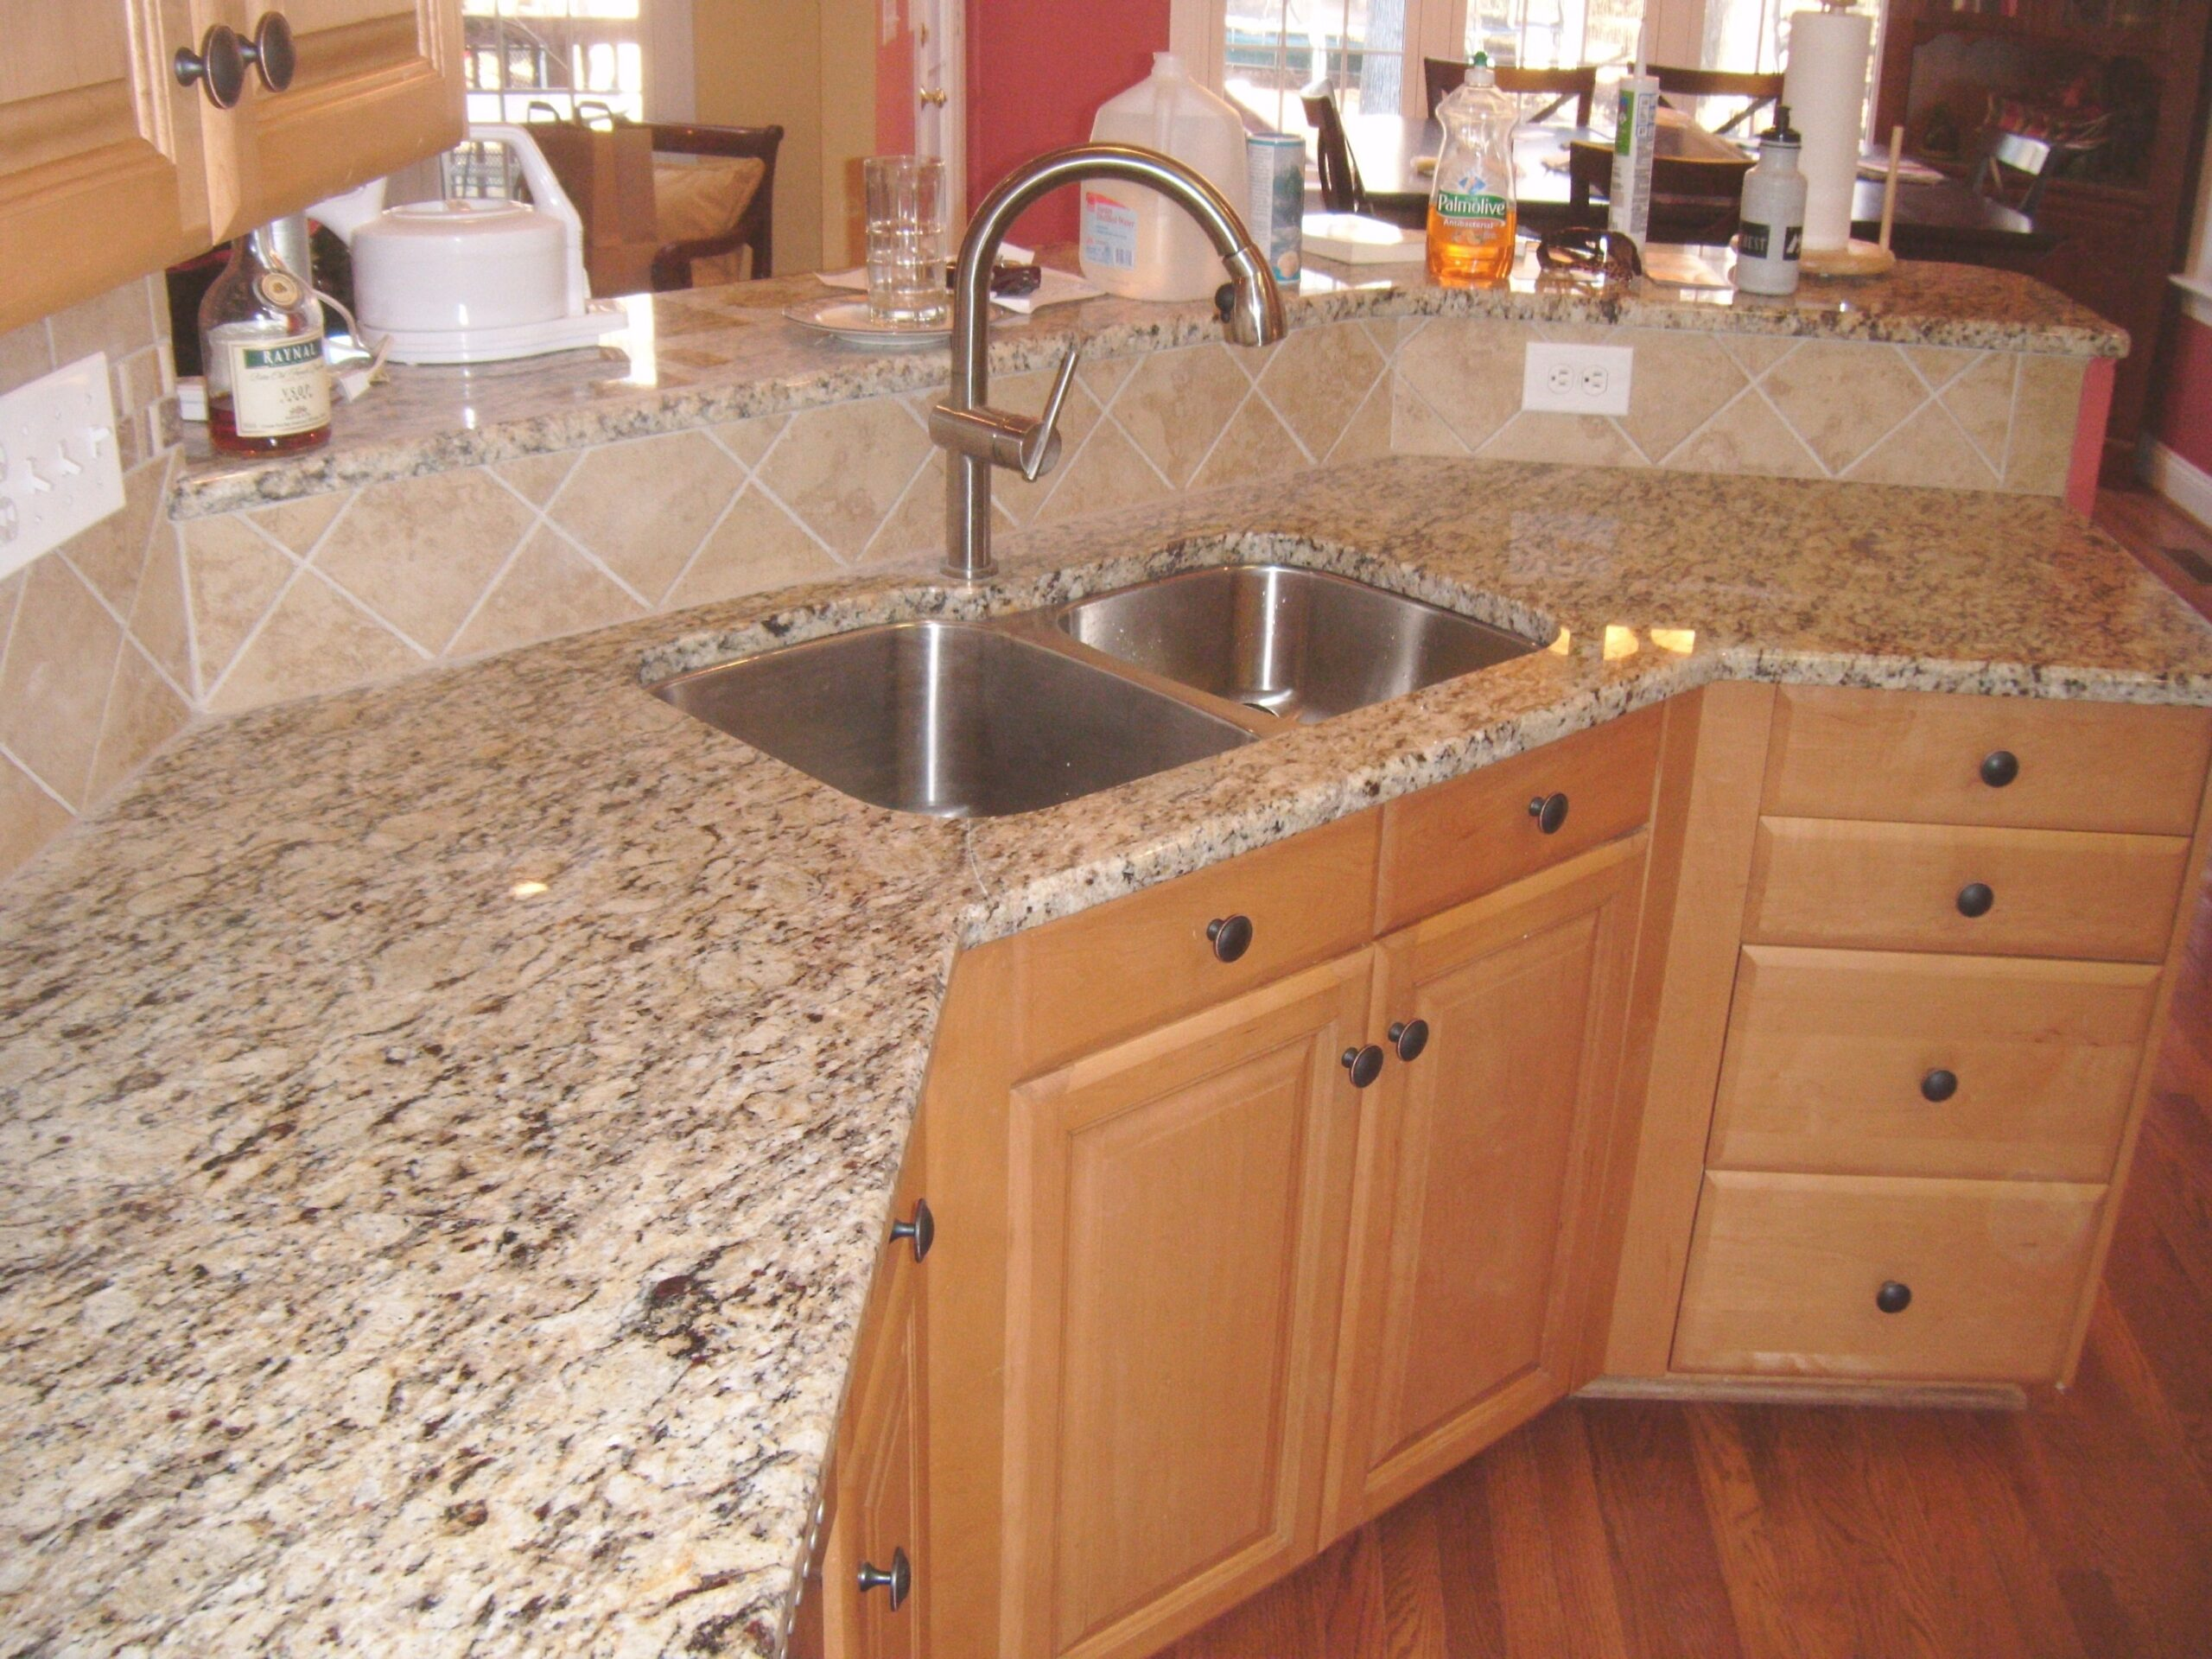 Santa Cecilia Granite With Tile Backsplash - Charlotte, Nc with regard to Santa Cecilia Light Granite